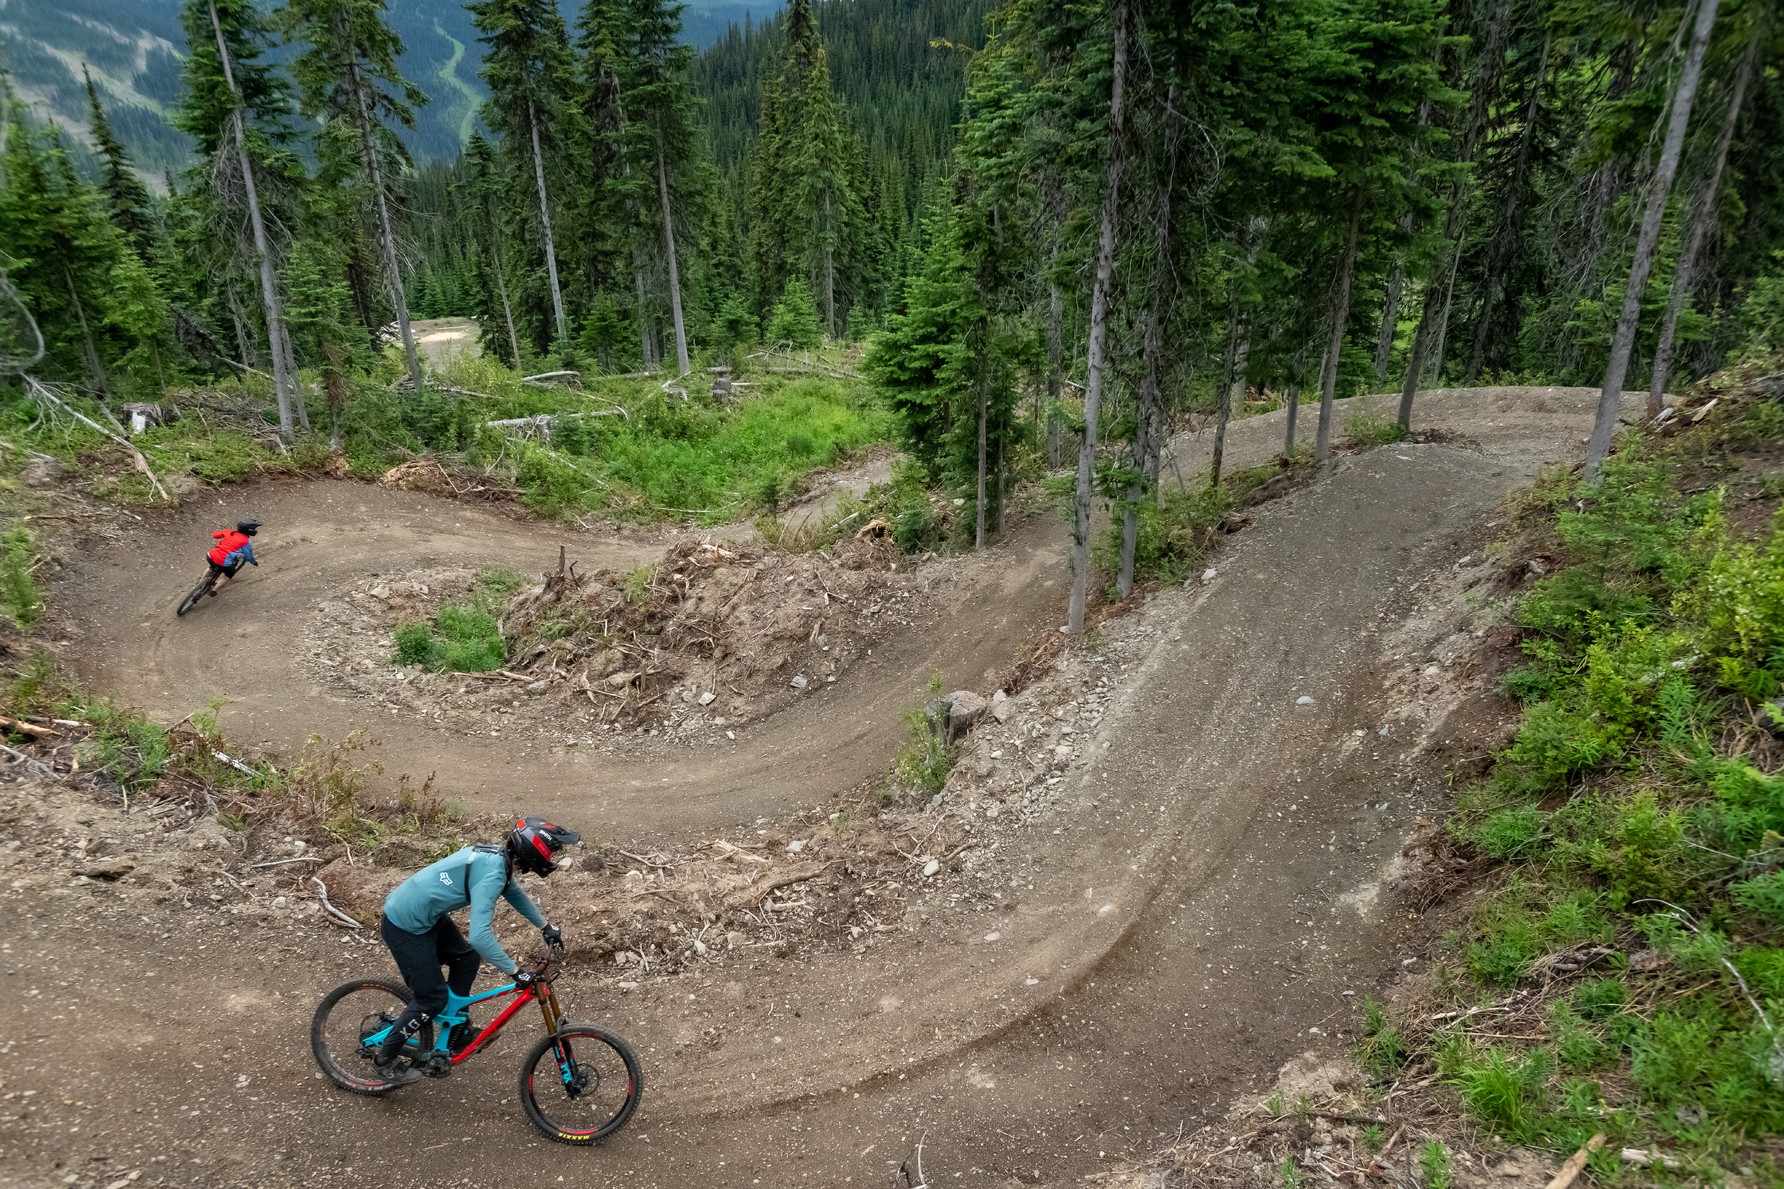 New trails, products, and a $350,000 investment for Sun